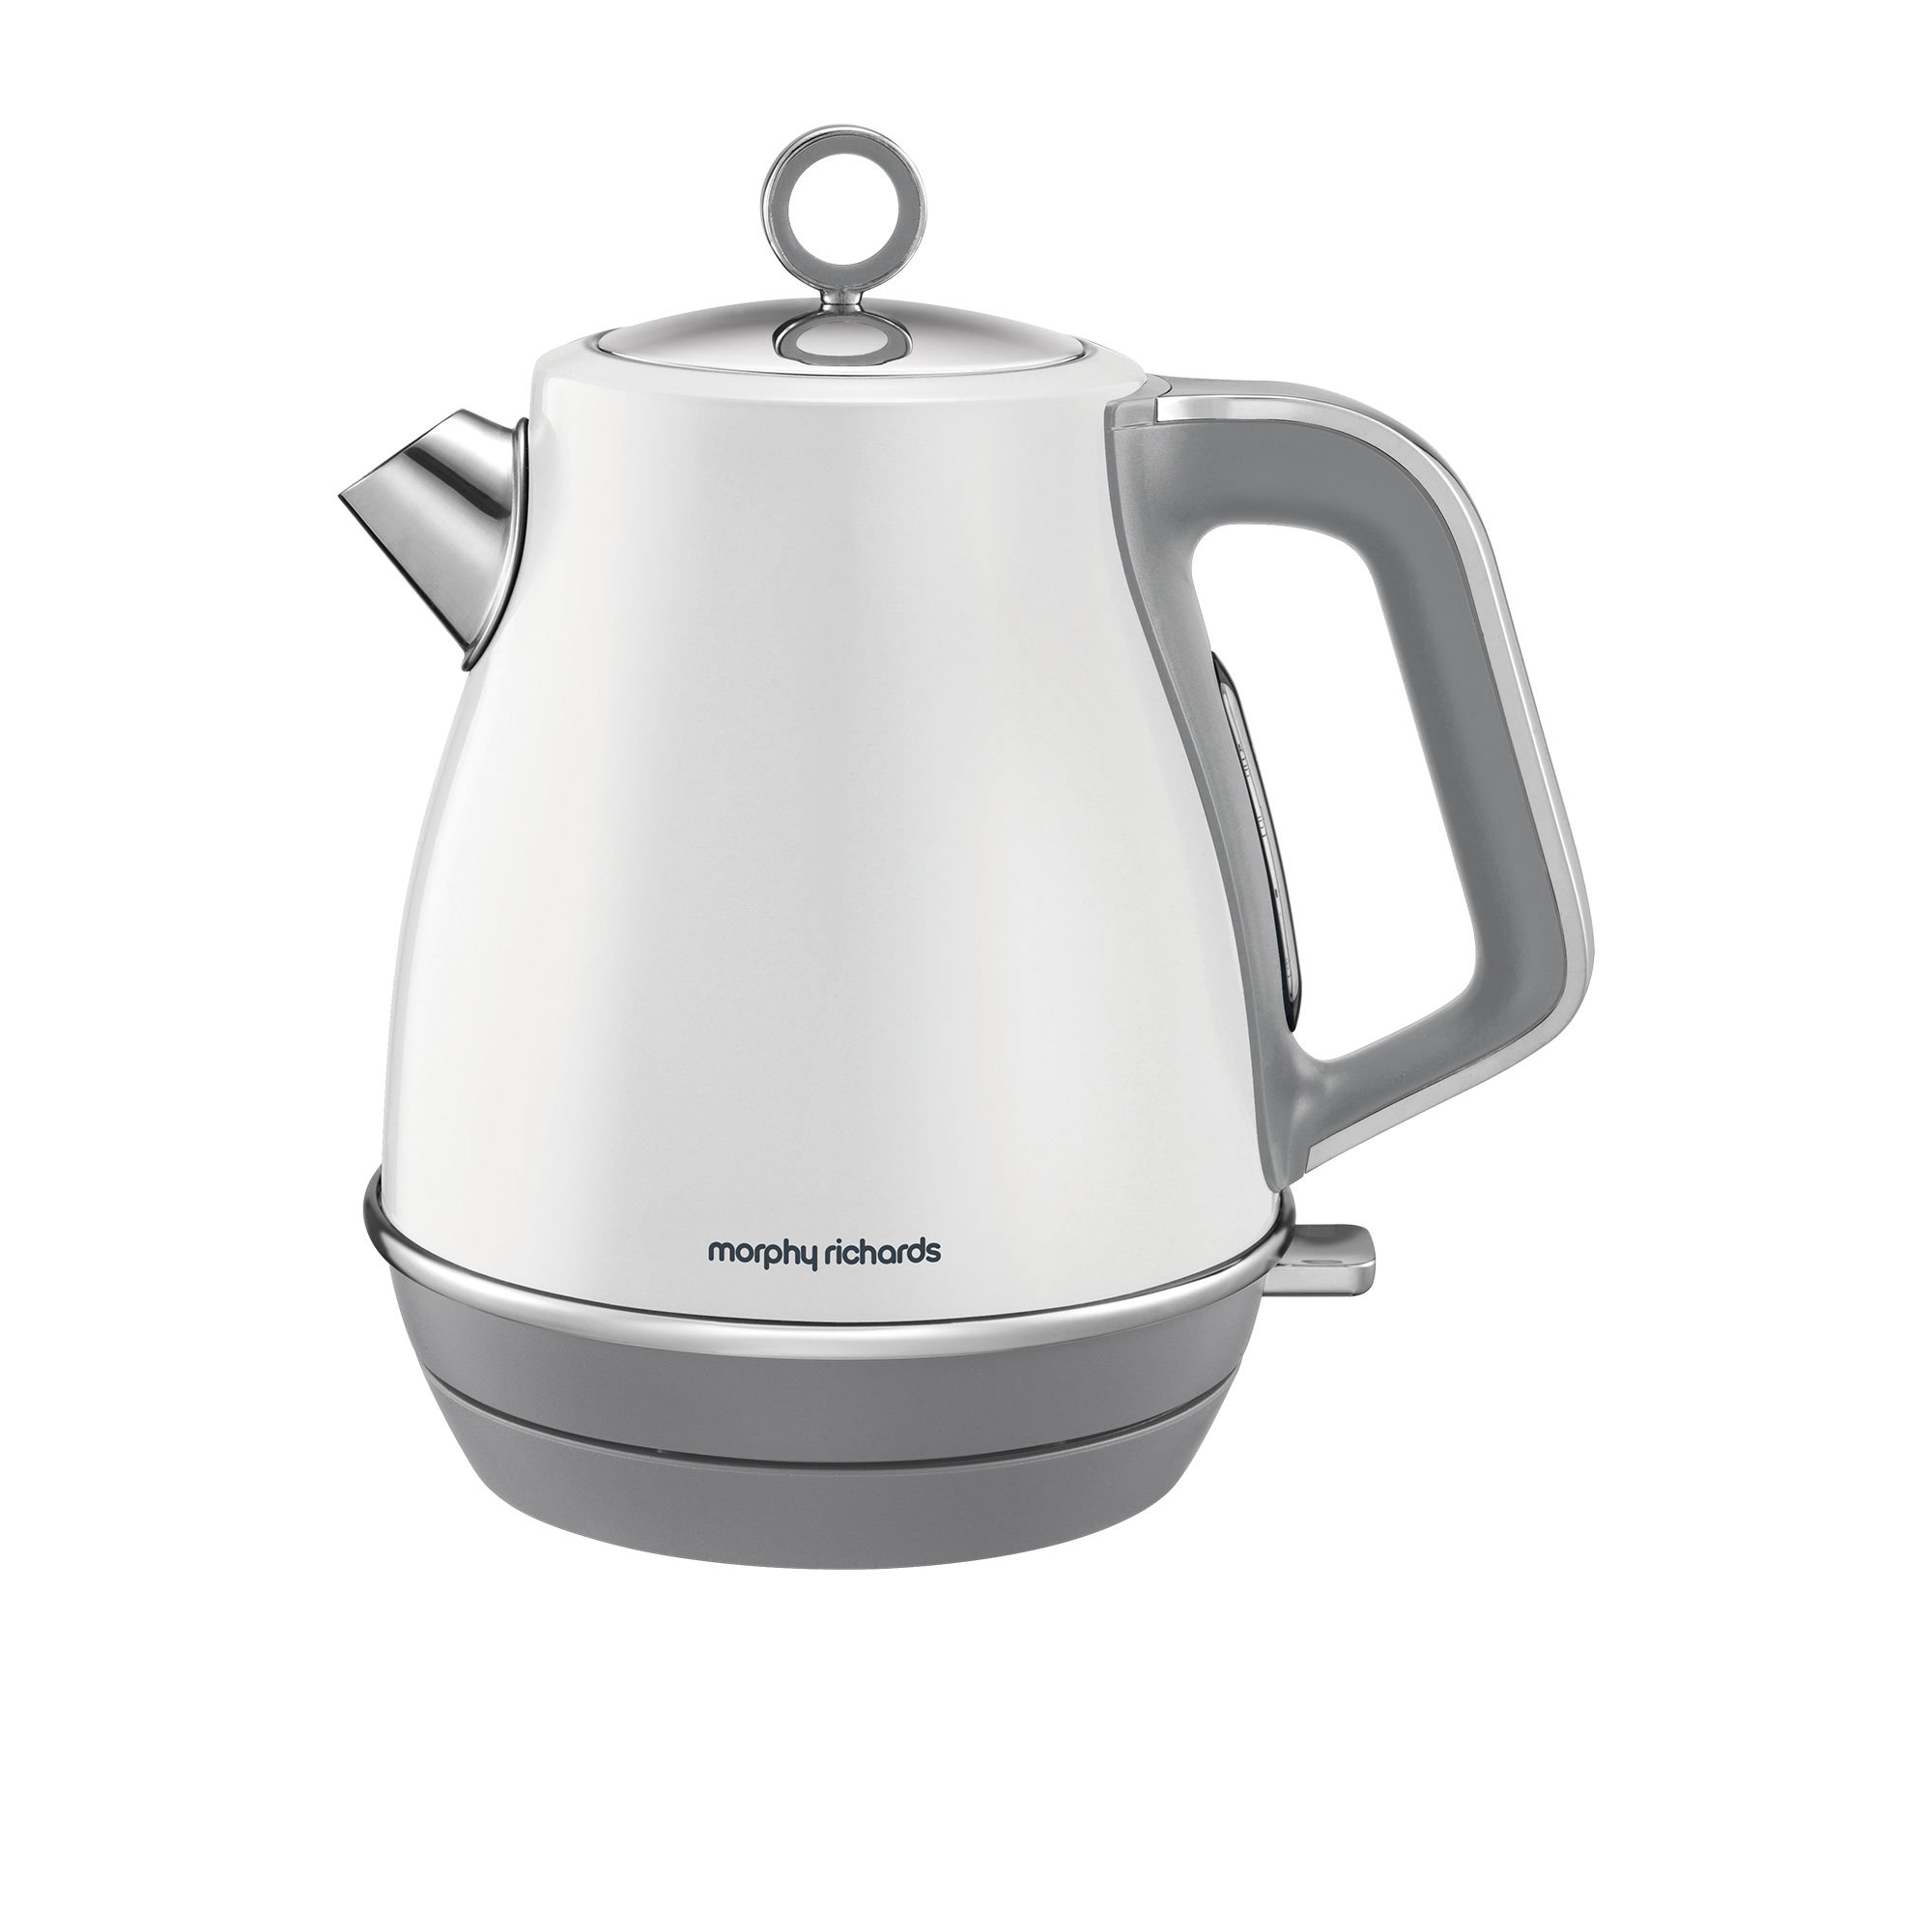 Morphy Richards Evoke Jug Kettle 1.5L White